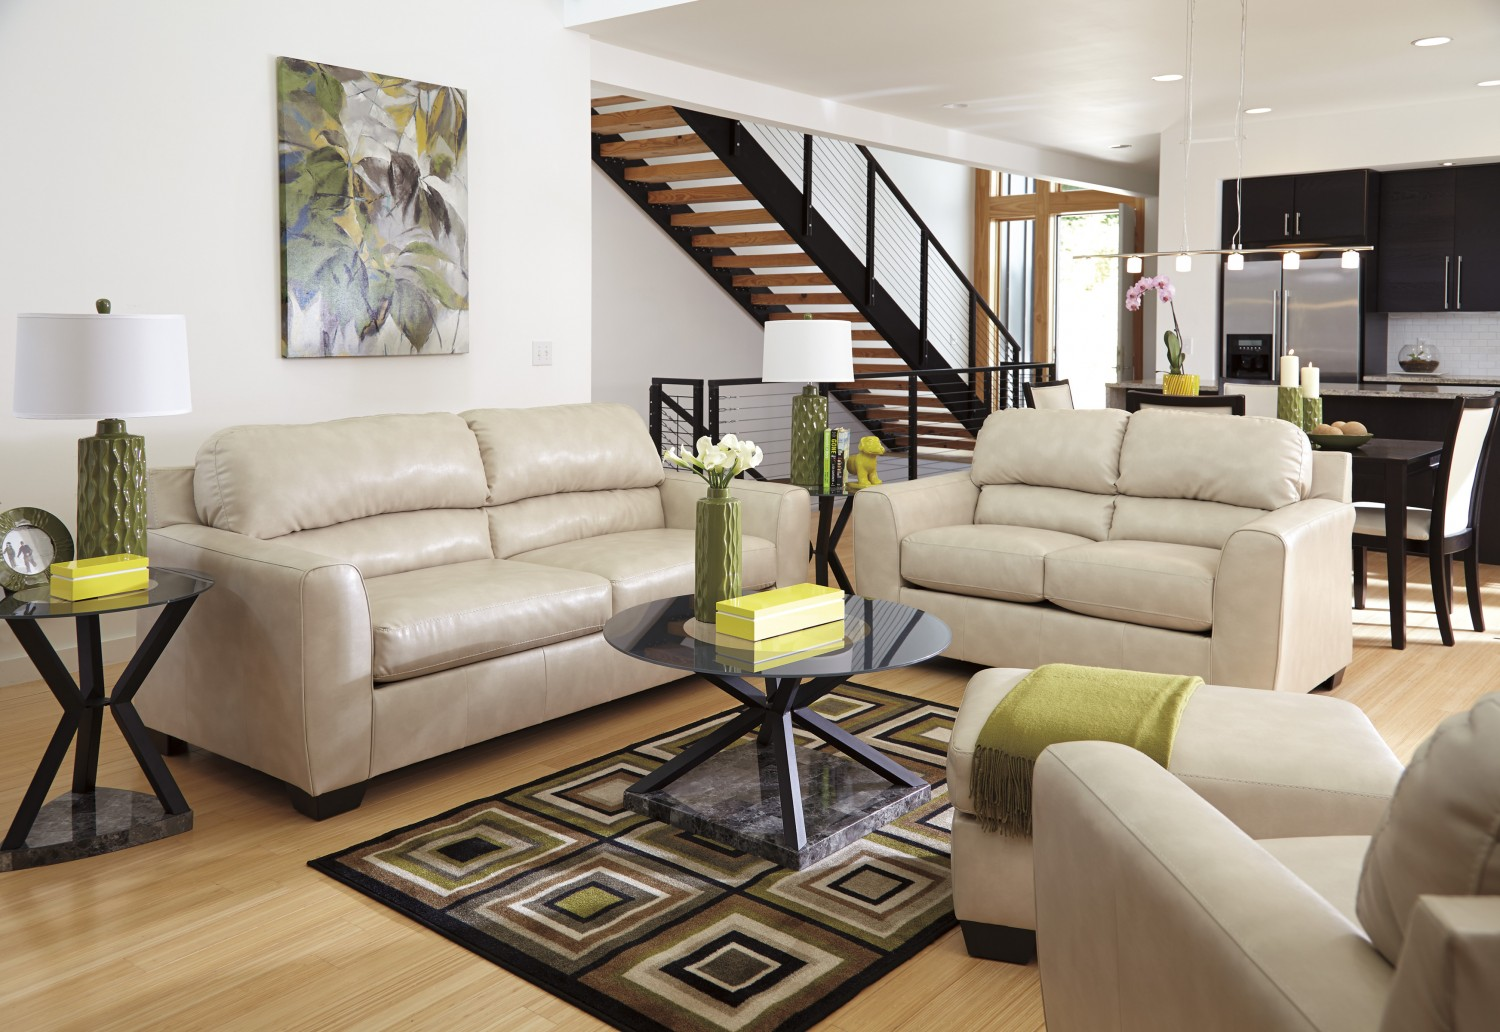 2015 Trending Living Room Design Tips: design in living room